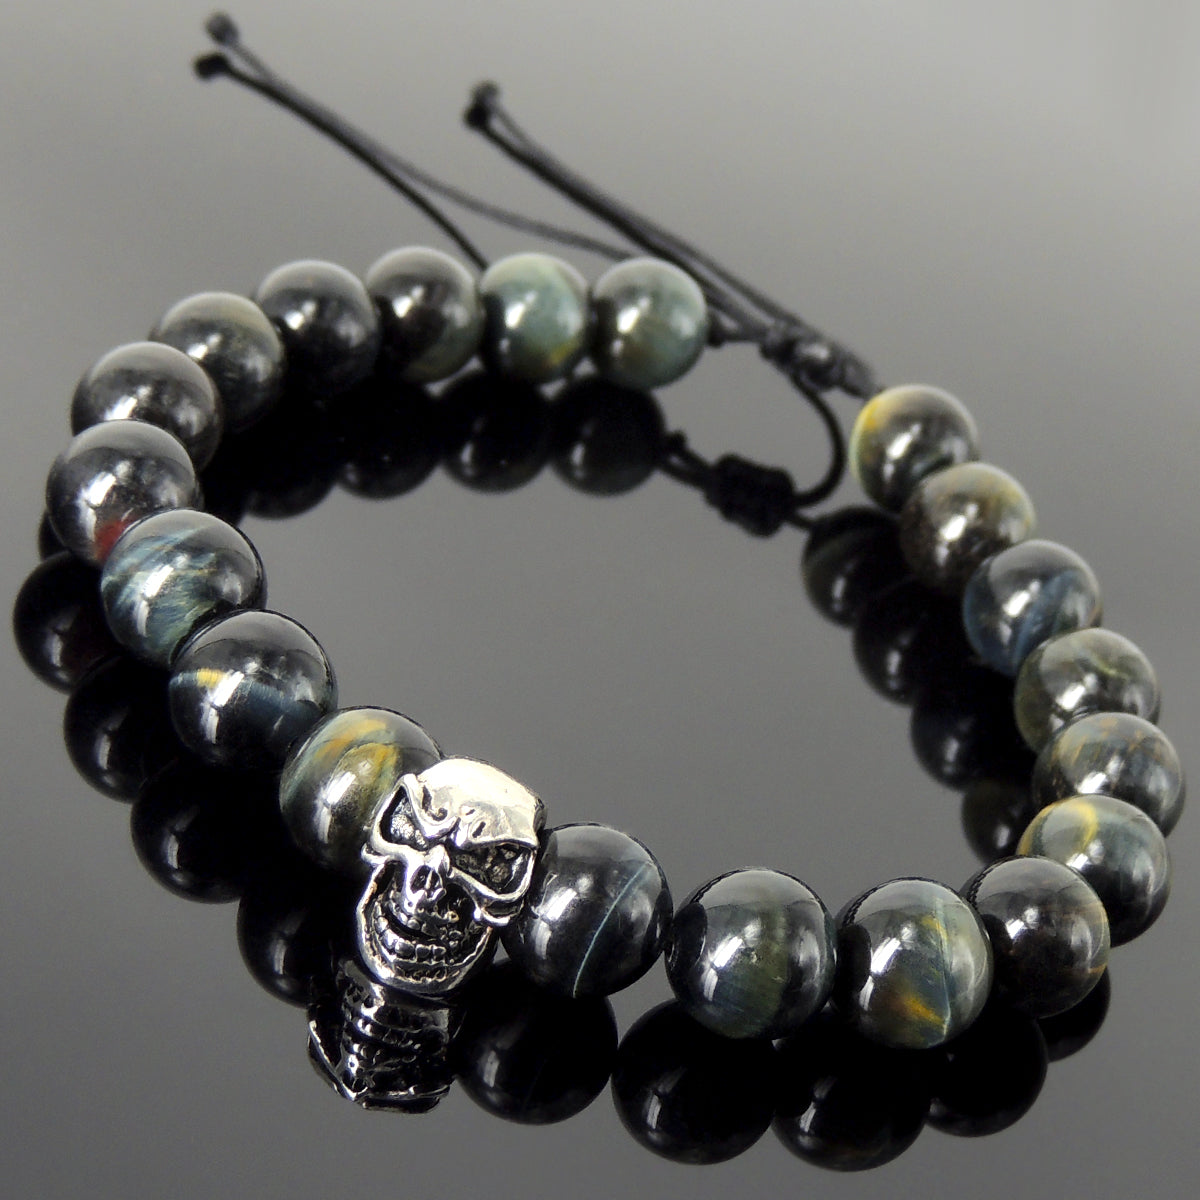 Biker Life Skull Gemstone Jewelry - Men's Women's Handmade Braided Bracelet Protection, Casual Wear with 10mm Brown Blue Tiger Eye, Adjustable Drawstring, S925 Sterling Silver Bead BR1724